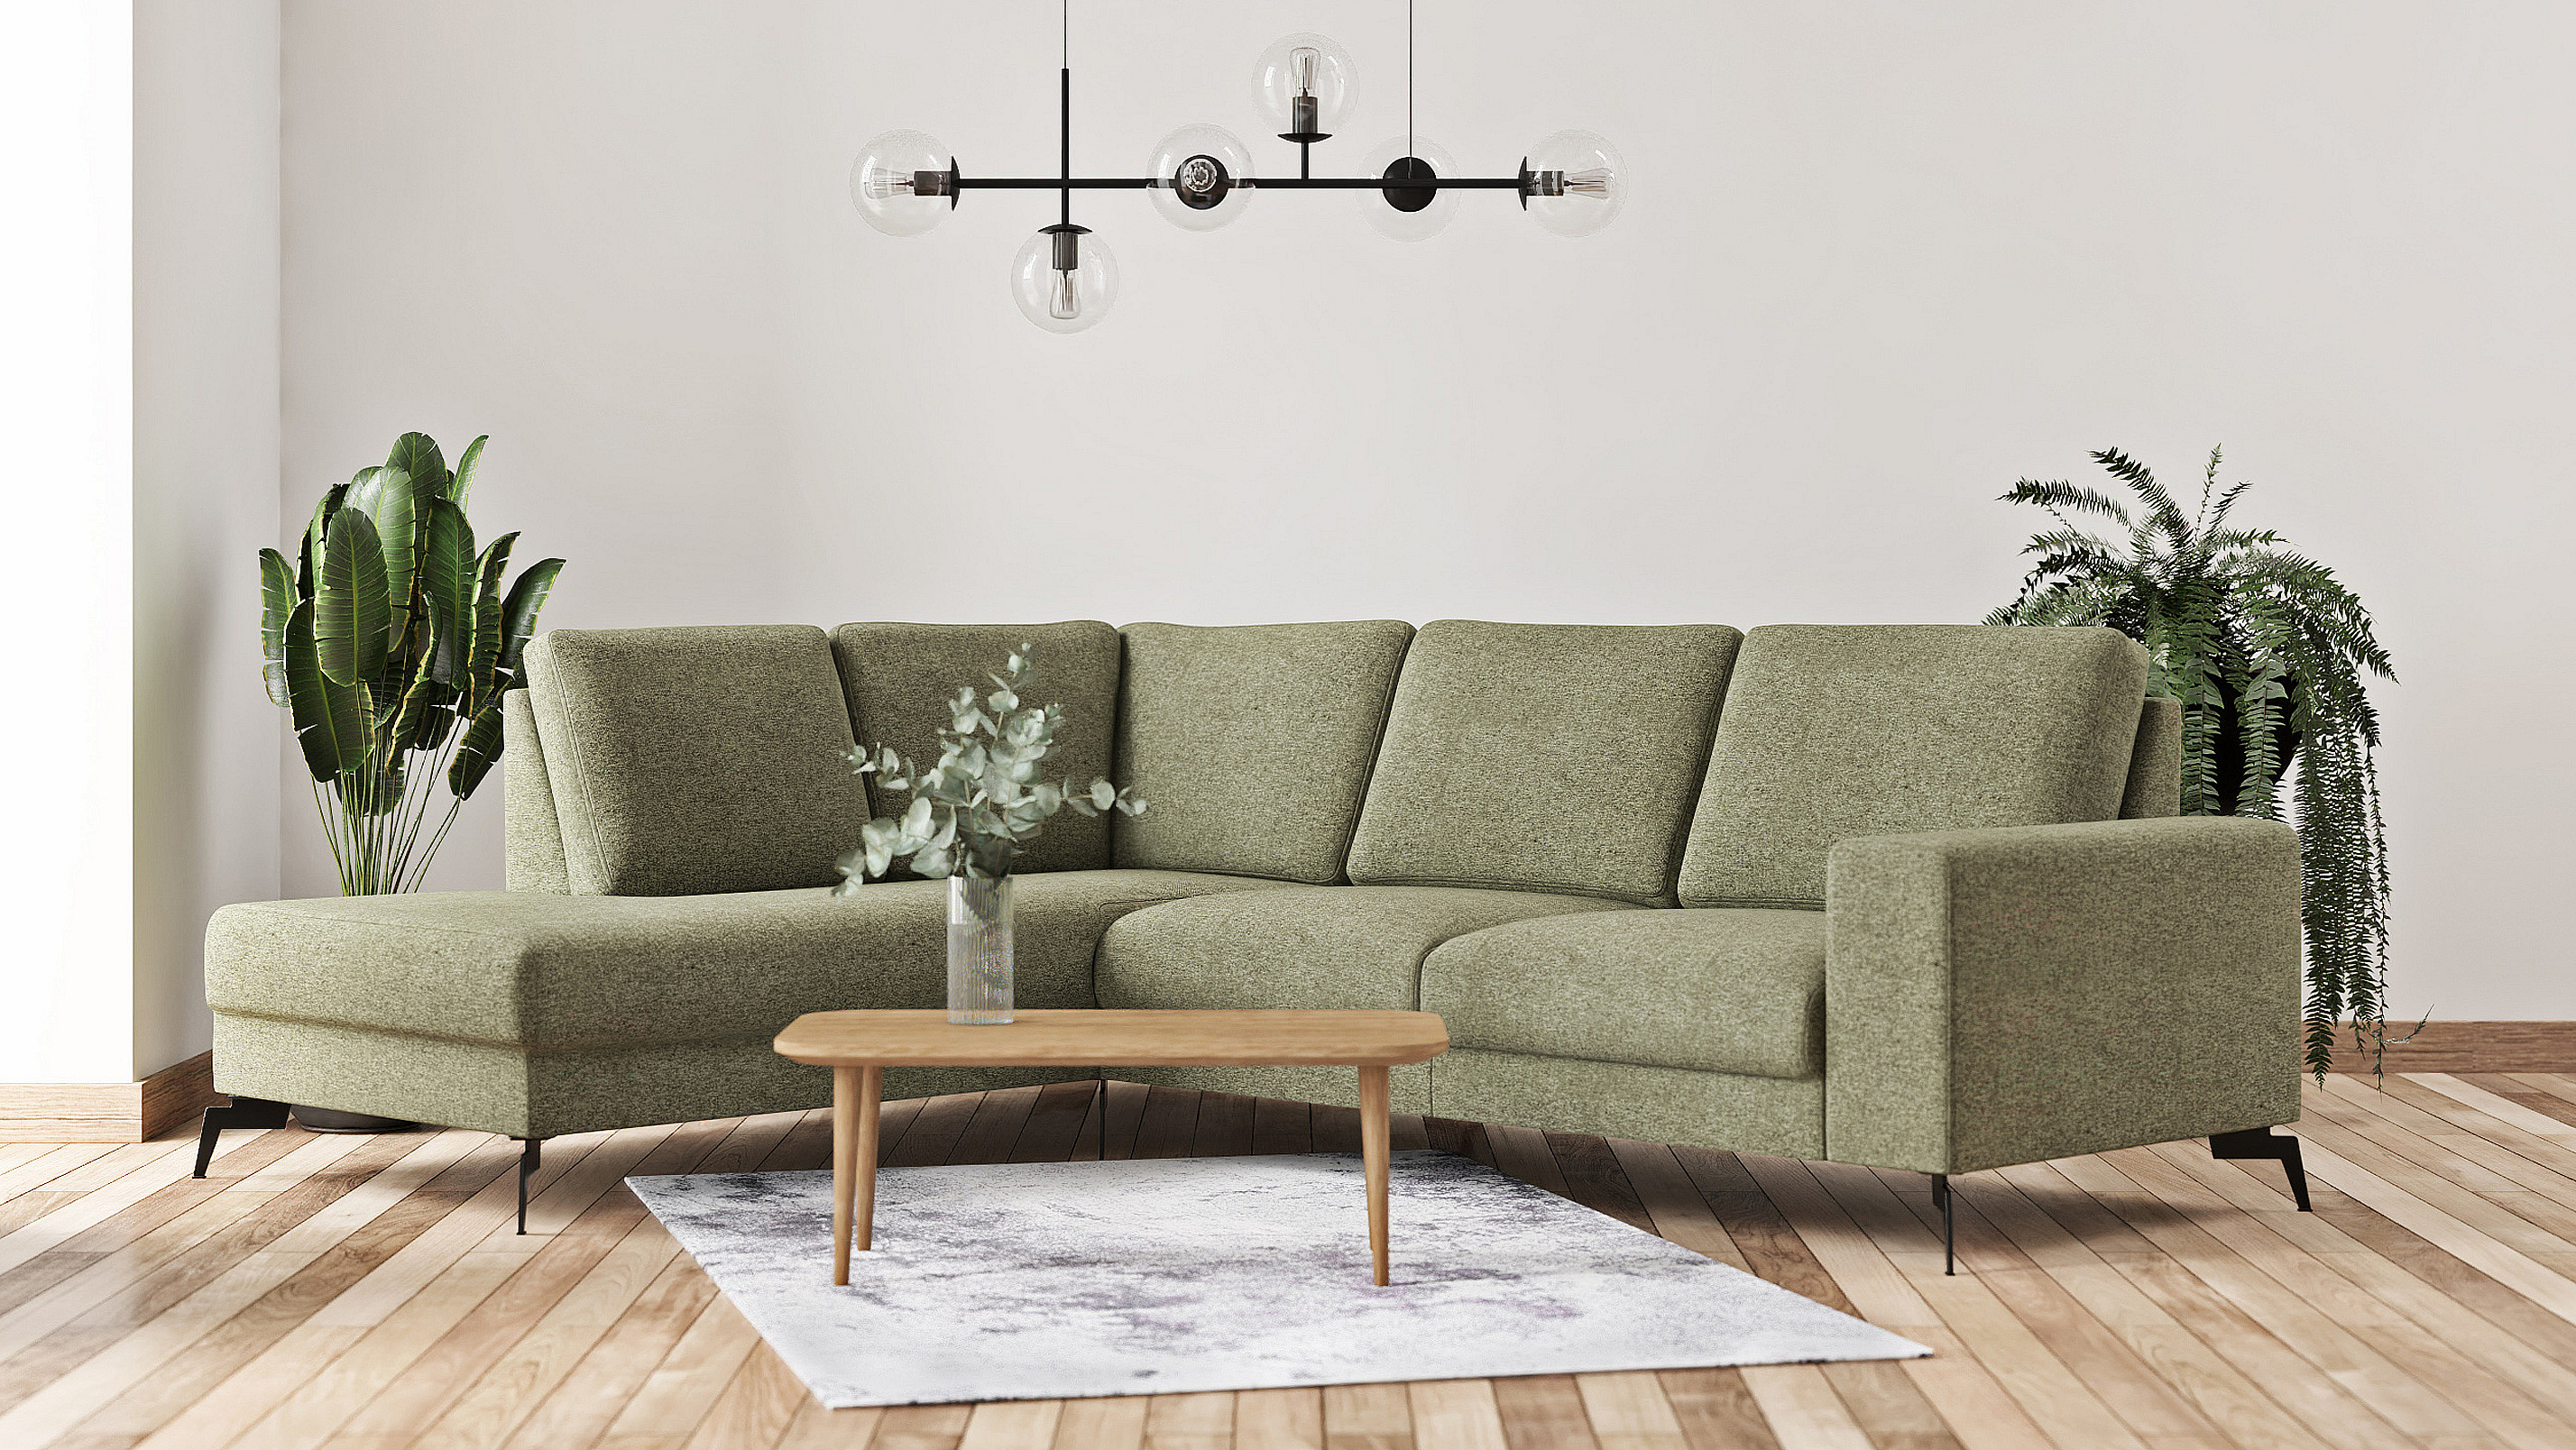 Living room example with the sofa Padova in grass green color.